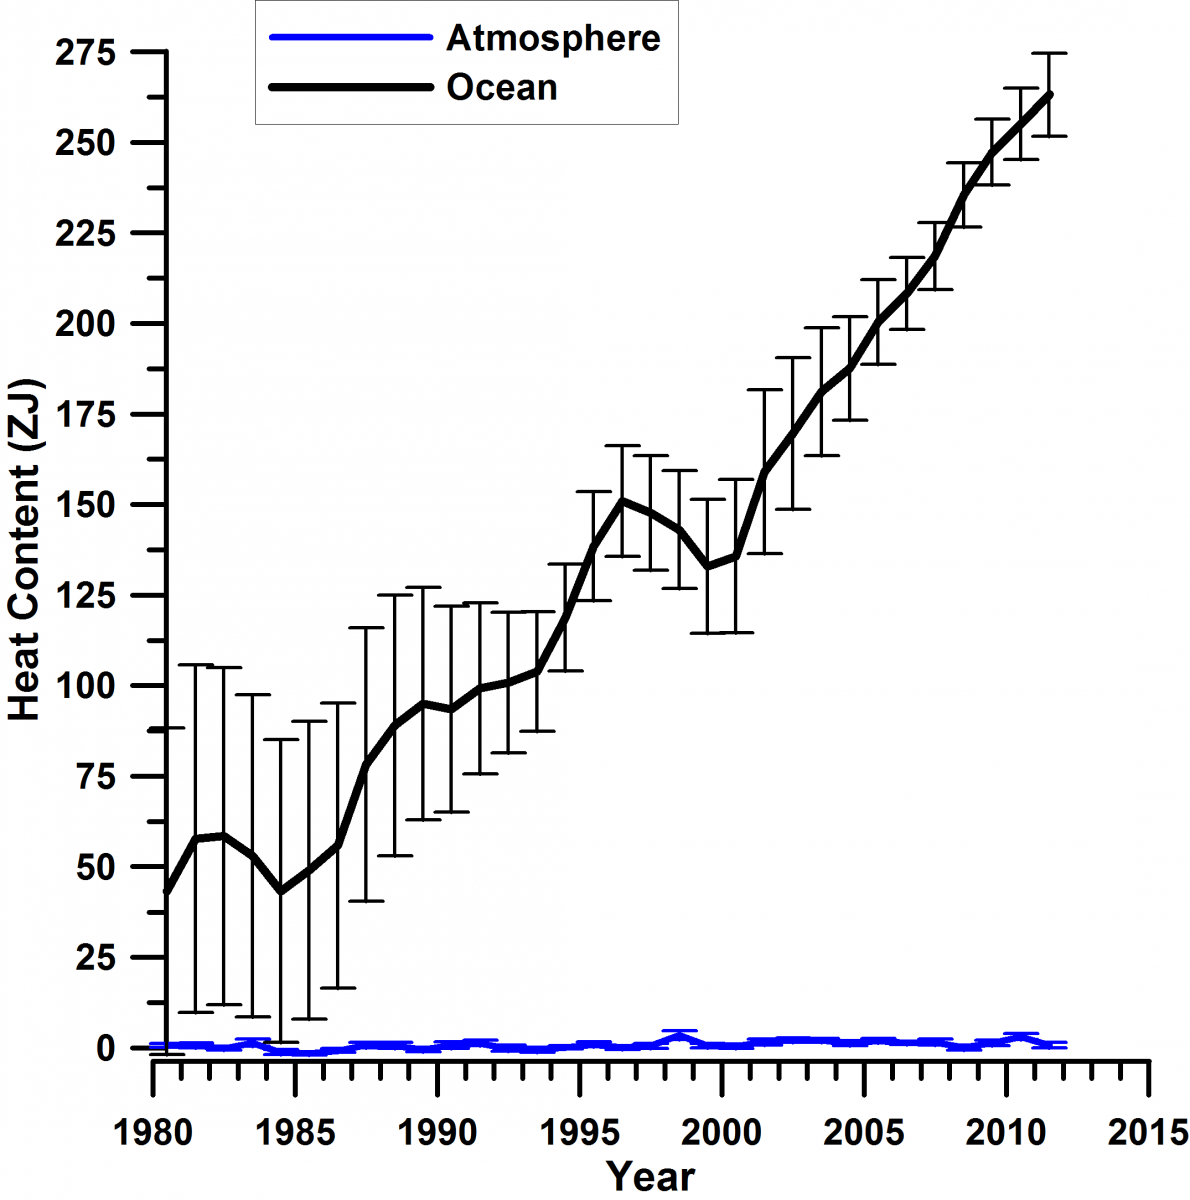 : Yearly ocean (black) and atmosphere (blue) heat content anomaly (data from IPCC AR5 report) shows the vast amount of heat absorbed by the ocean compared to the atmosphere